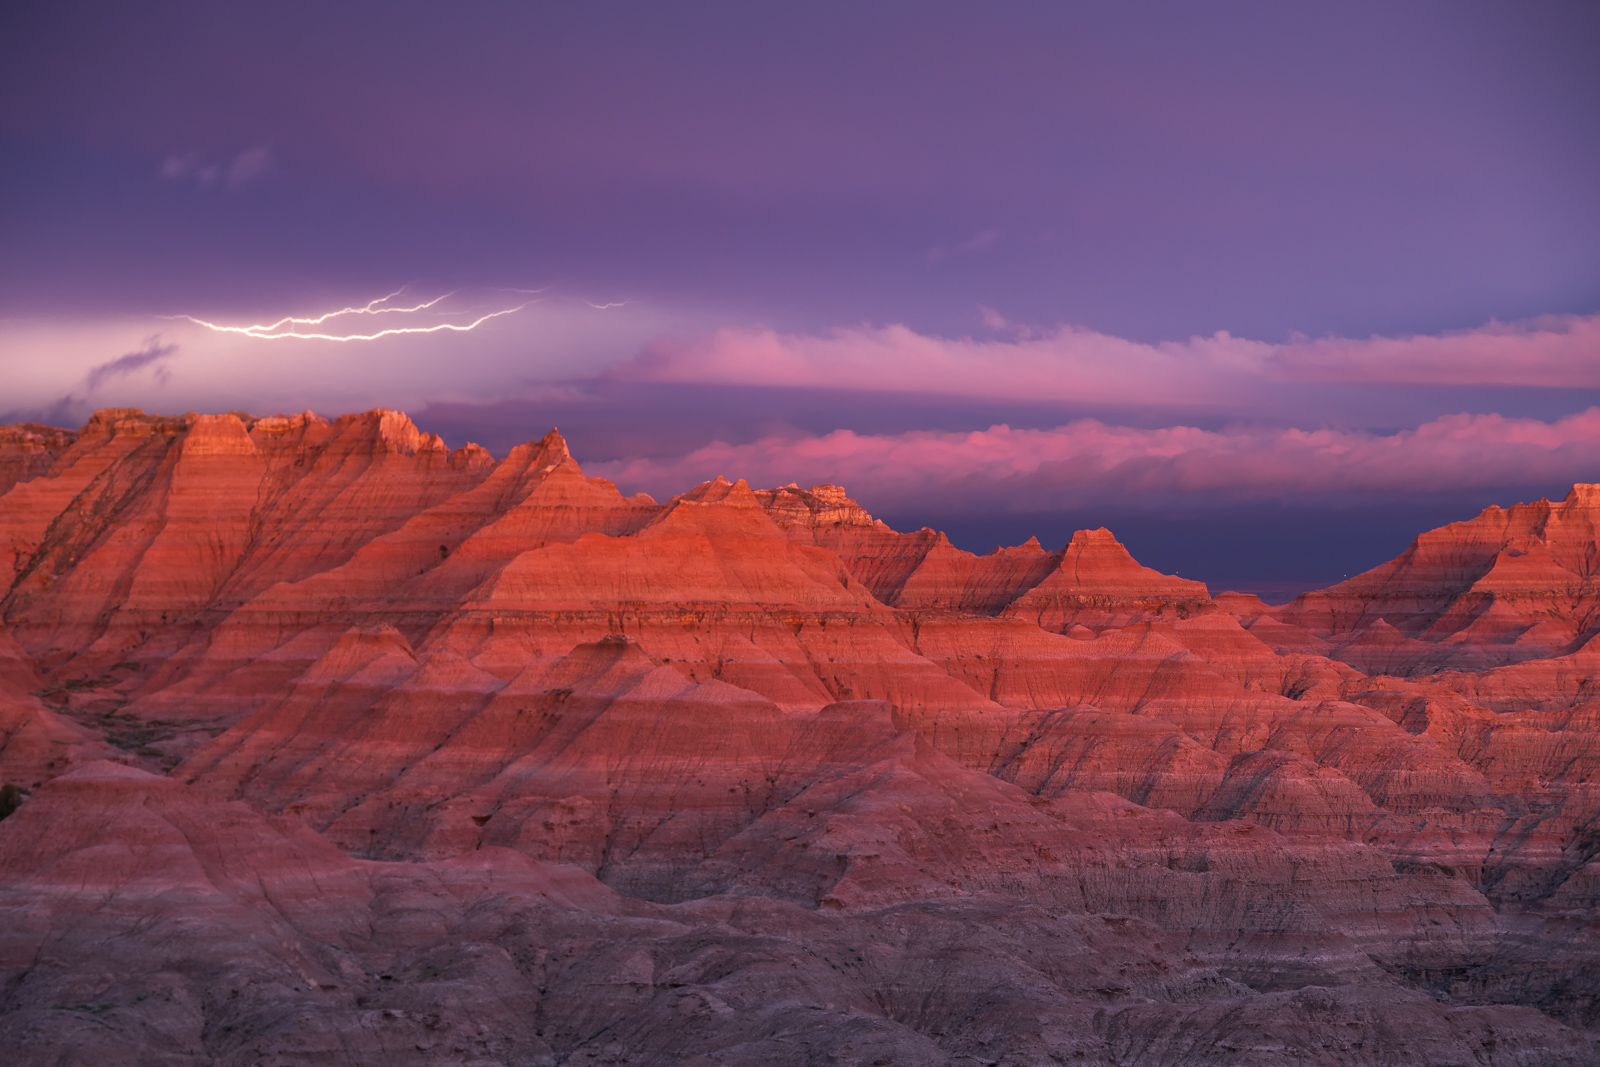 Lightning over the Badlands at sunset during a passing summer thunderstorm.